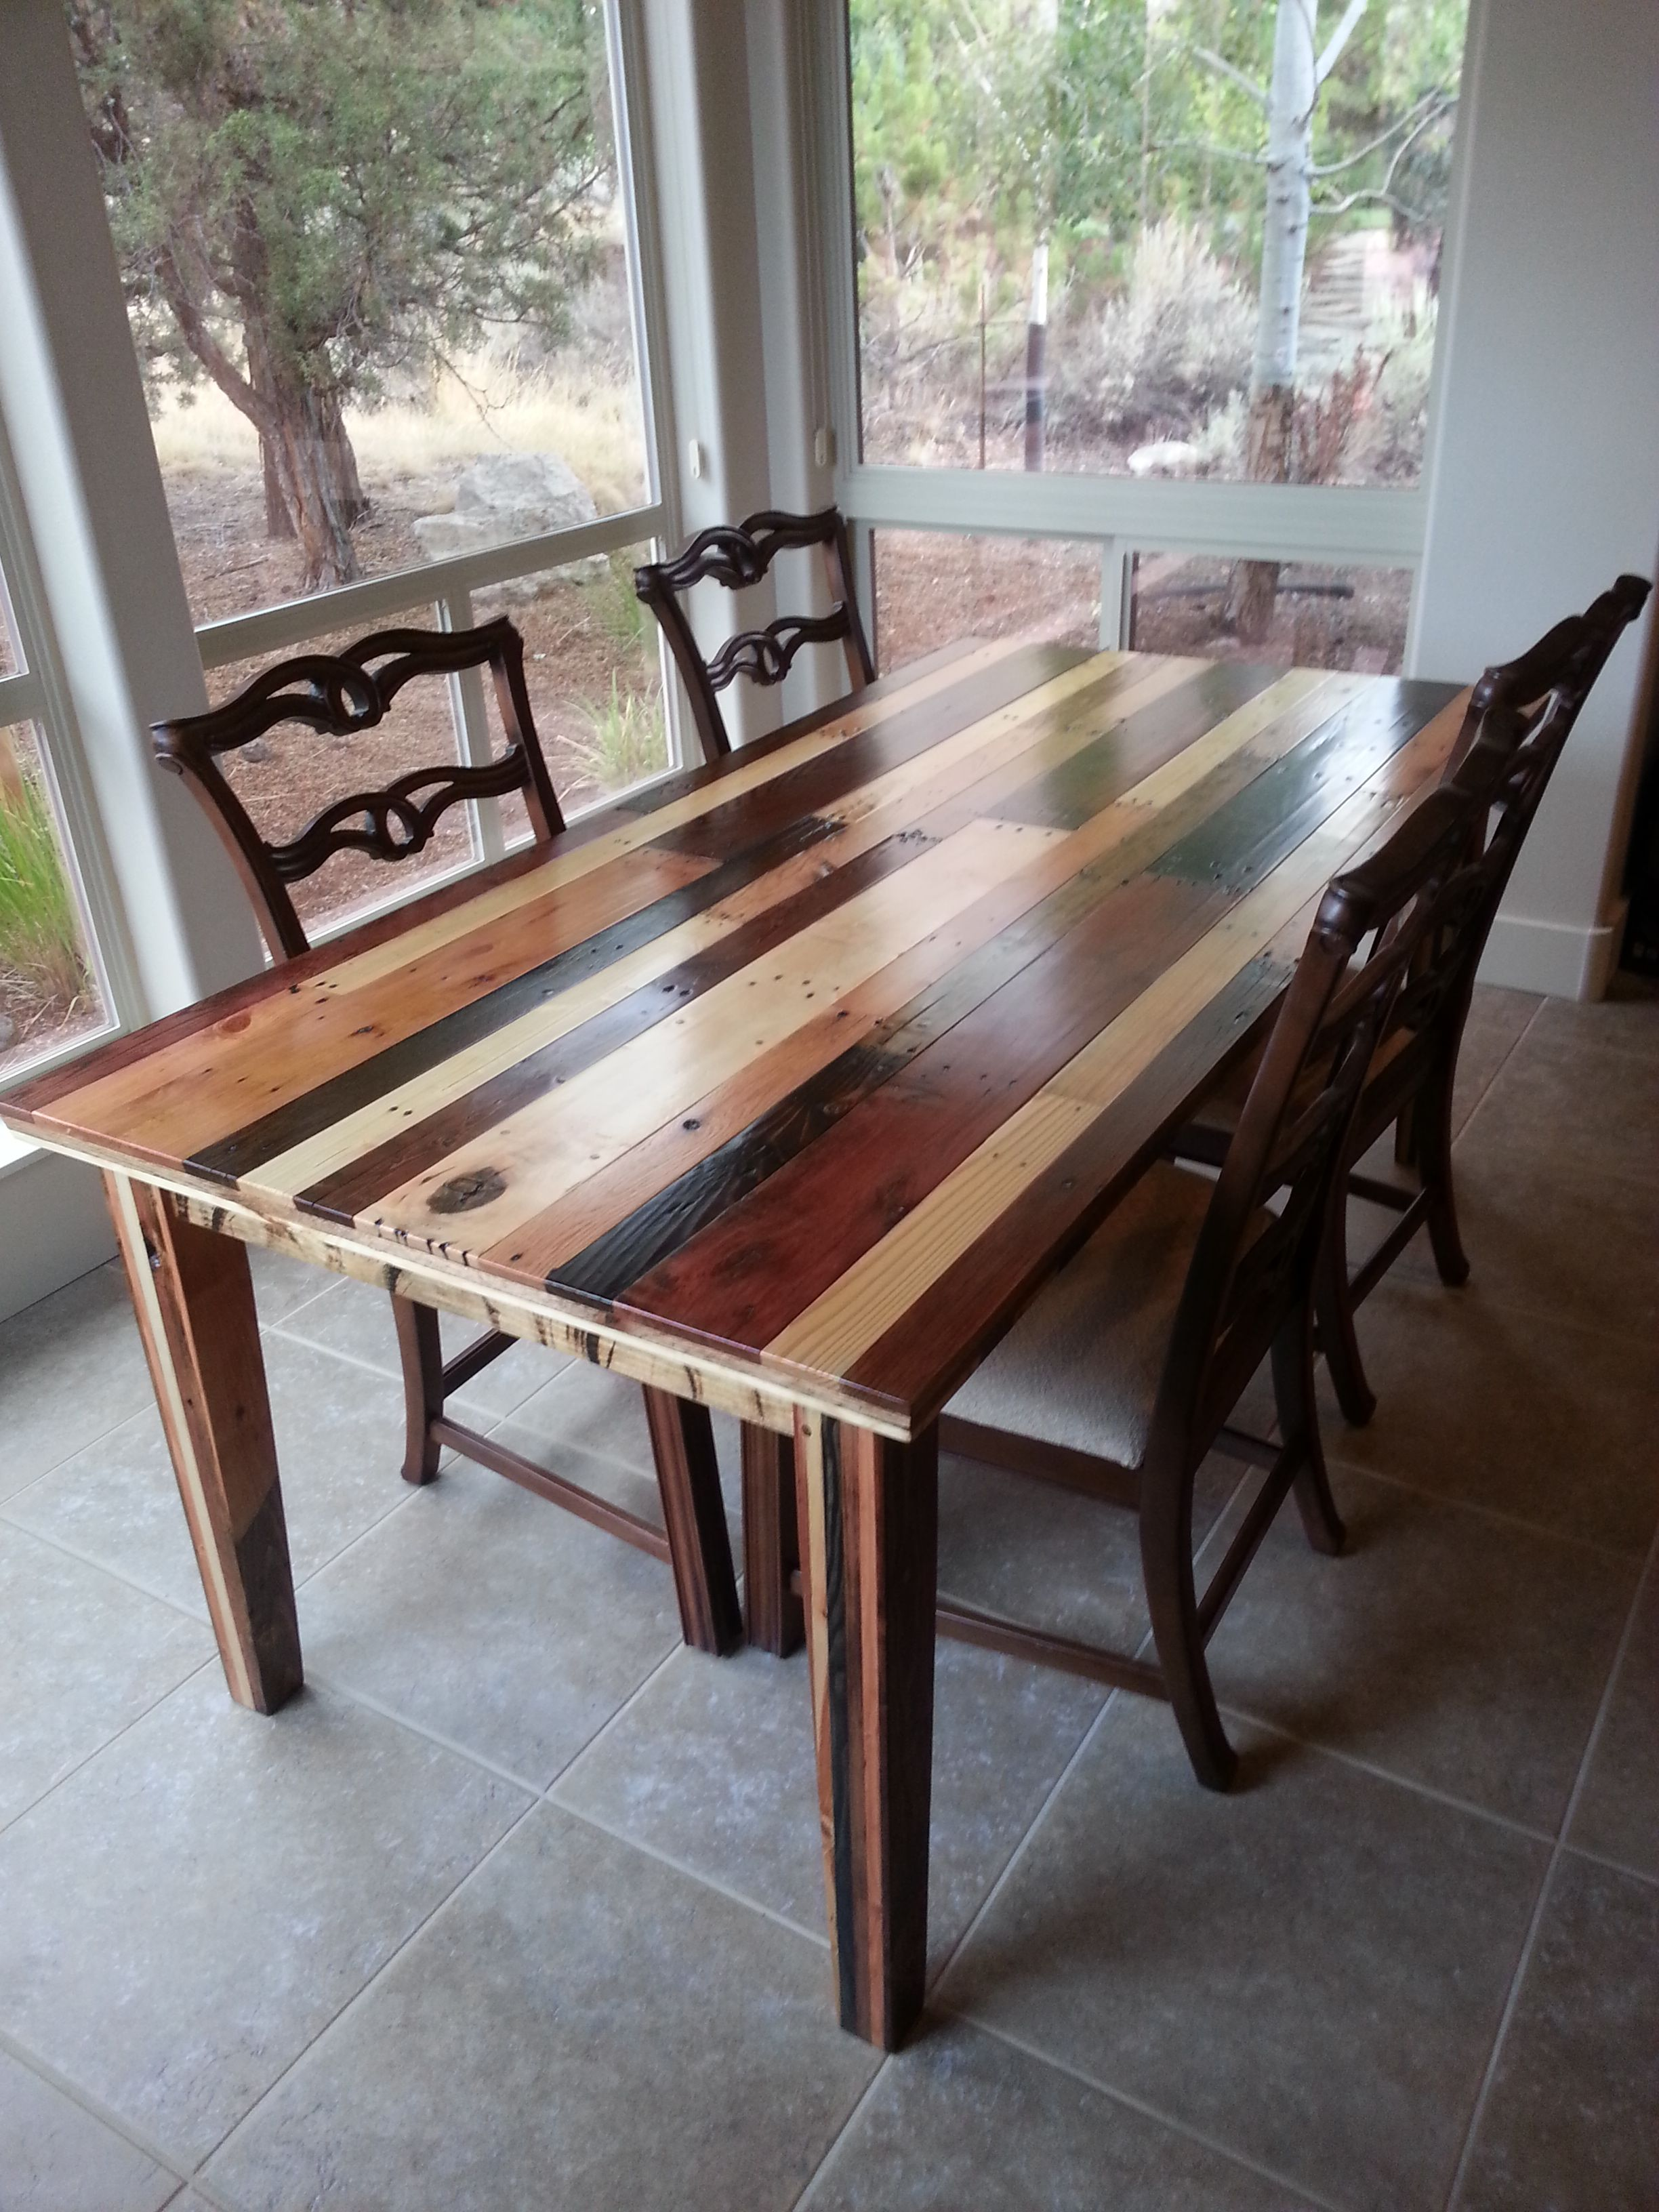 Dining room table I made from pallet wood Pallet Wood Projects